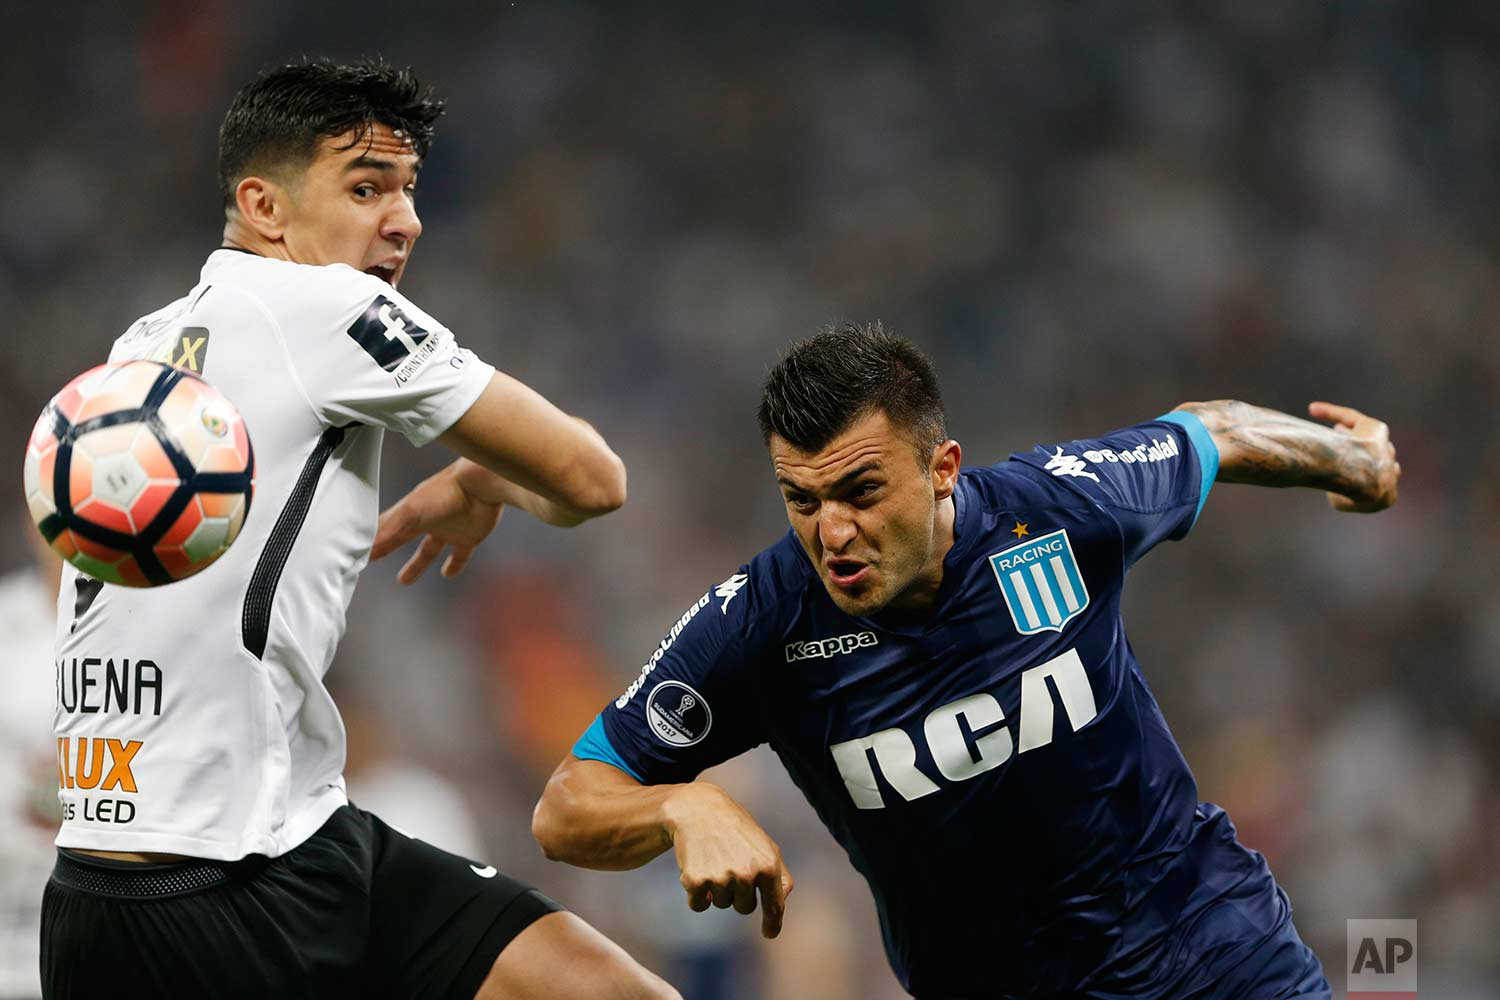 Fabian Balbuena of Brazil's Corinthians fights for the ball with Enrique Luis Triverio of Argentina's Racing Club, right, during a Copa Sudamericana soccer match in Sao Paulo, Brazil, Wednesday, Sept. 13, 2017. (AP Photo/Nelson Antoine)